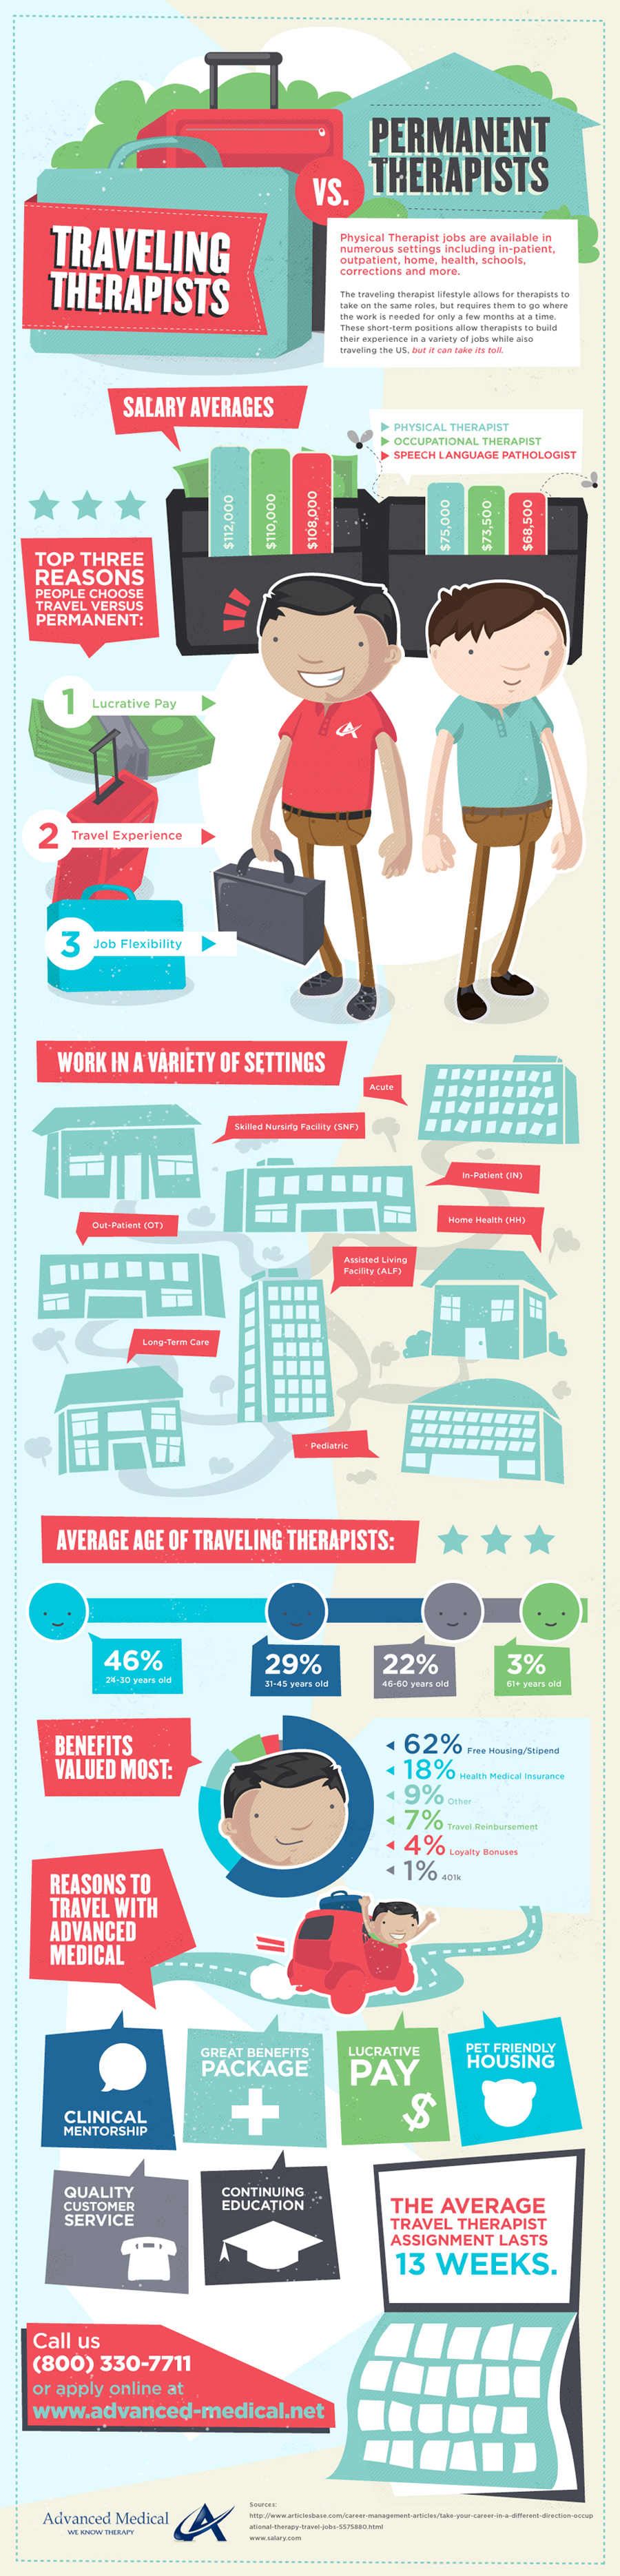 Travel Therapy vs Permanent Therapy Job